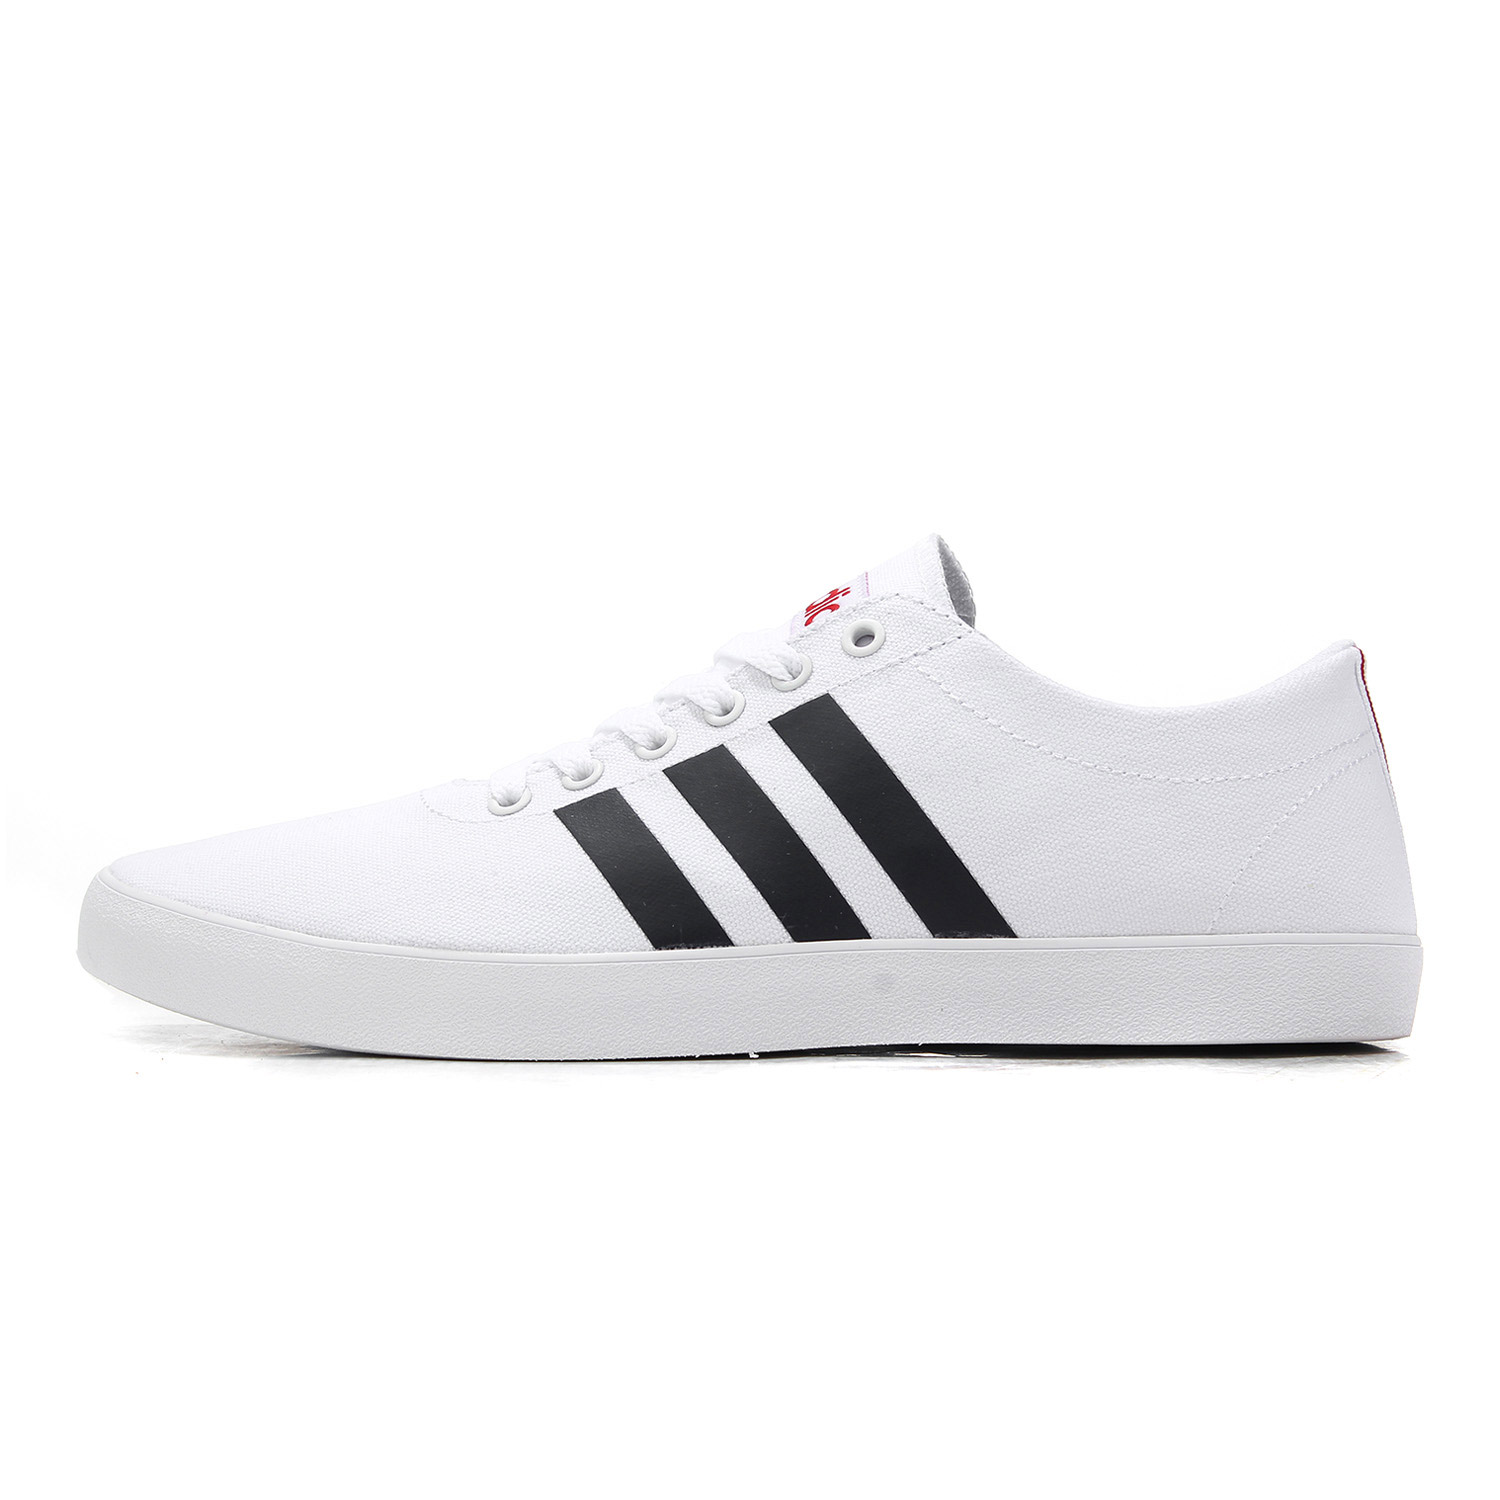 adidas canvas shoes mens white